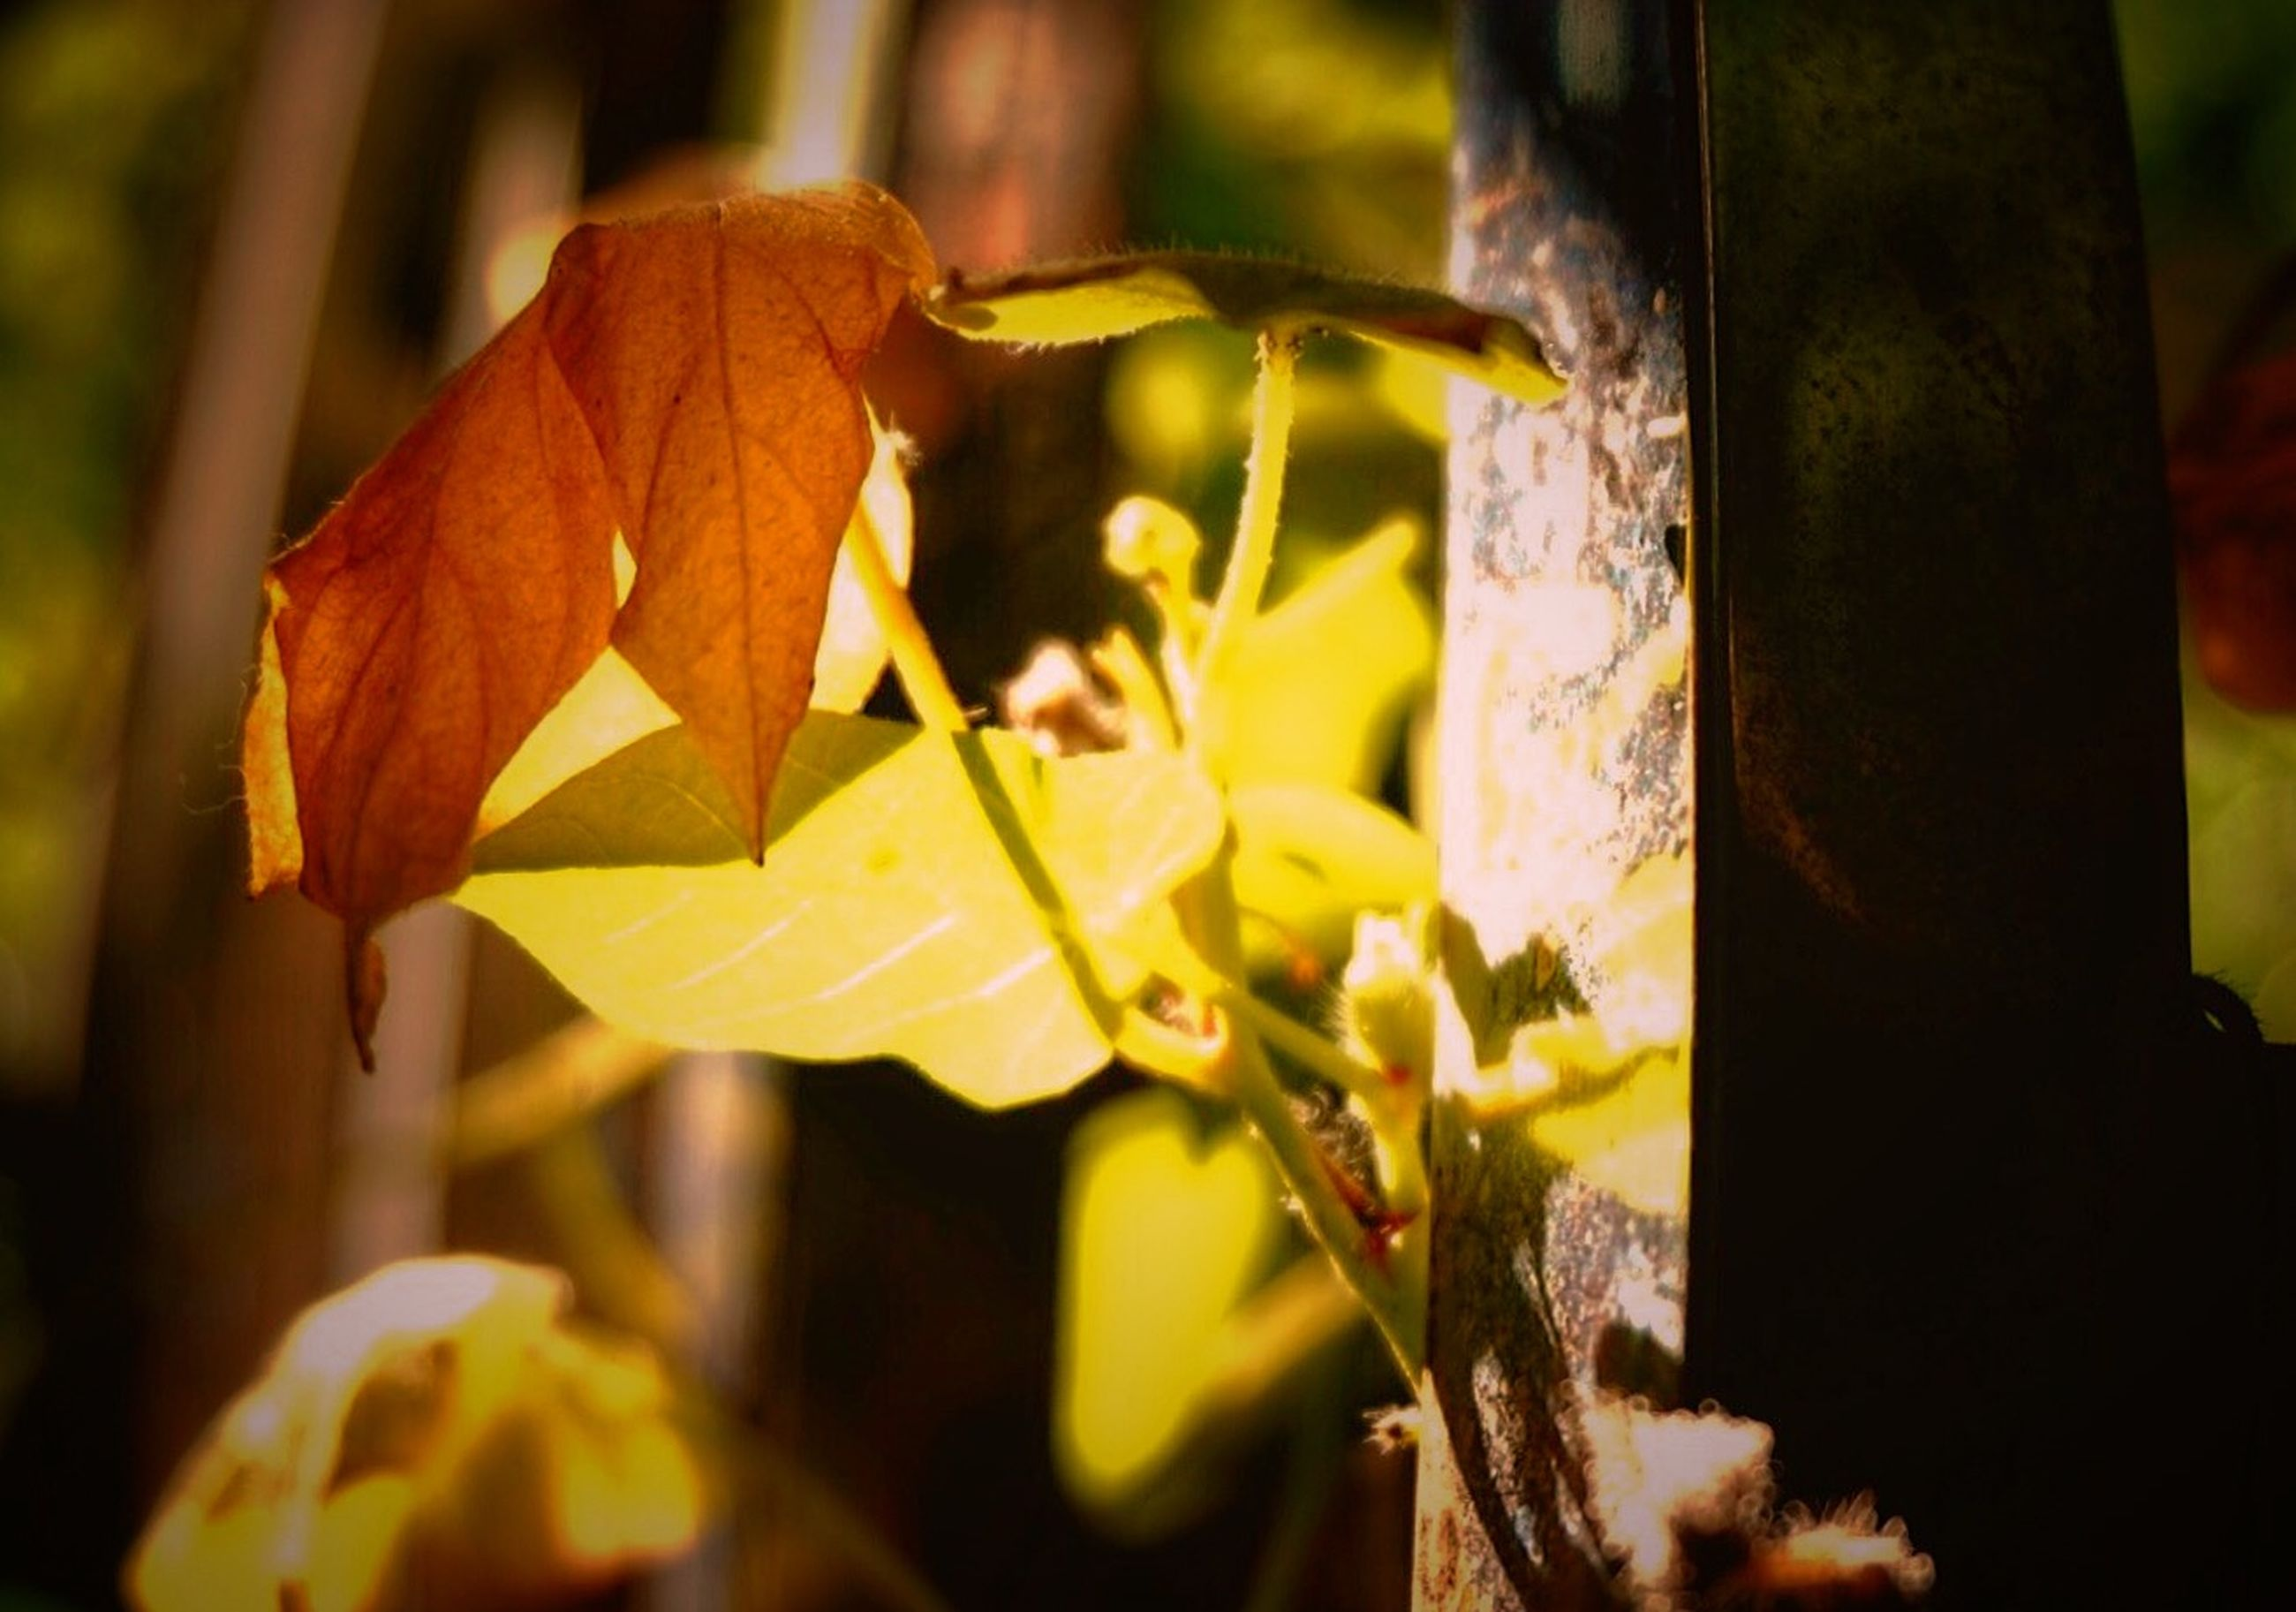 focus on foreground, close-up, leaf, selective focus, yellow, autumn, hanging, day, outdoors, nature, season, metal, change, no people, leaves, growth, wood - material, tree, sunlight, branch